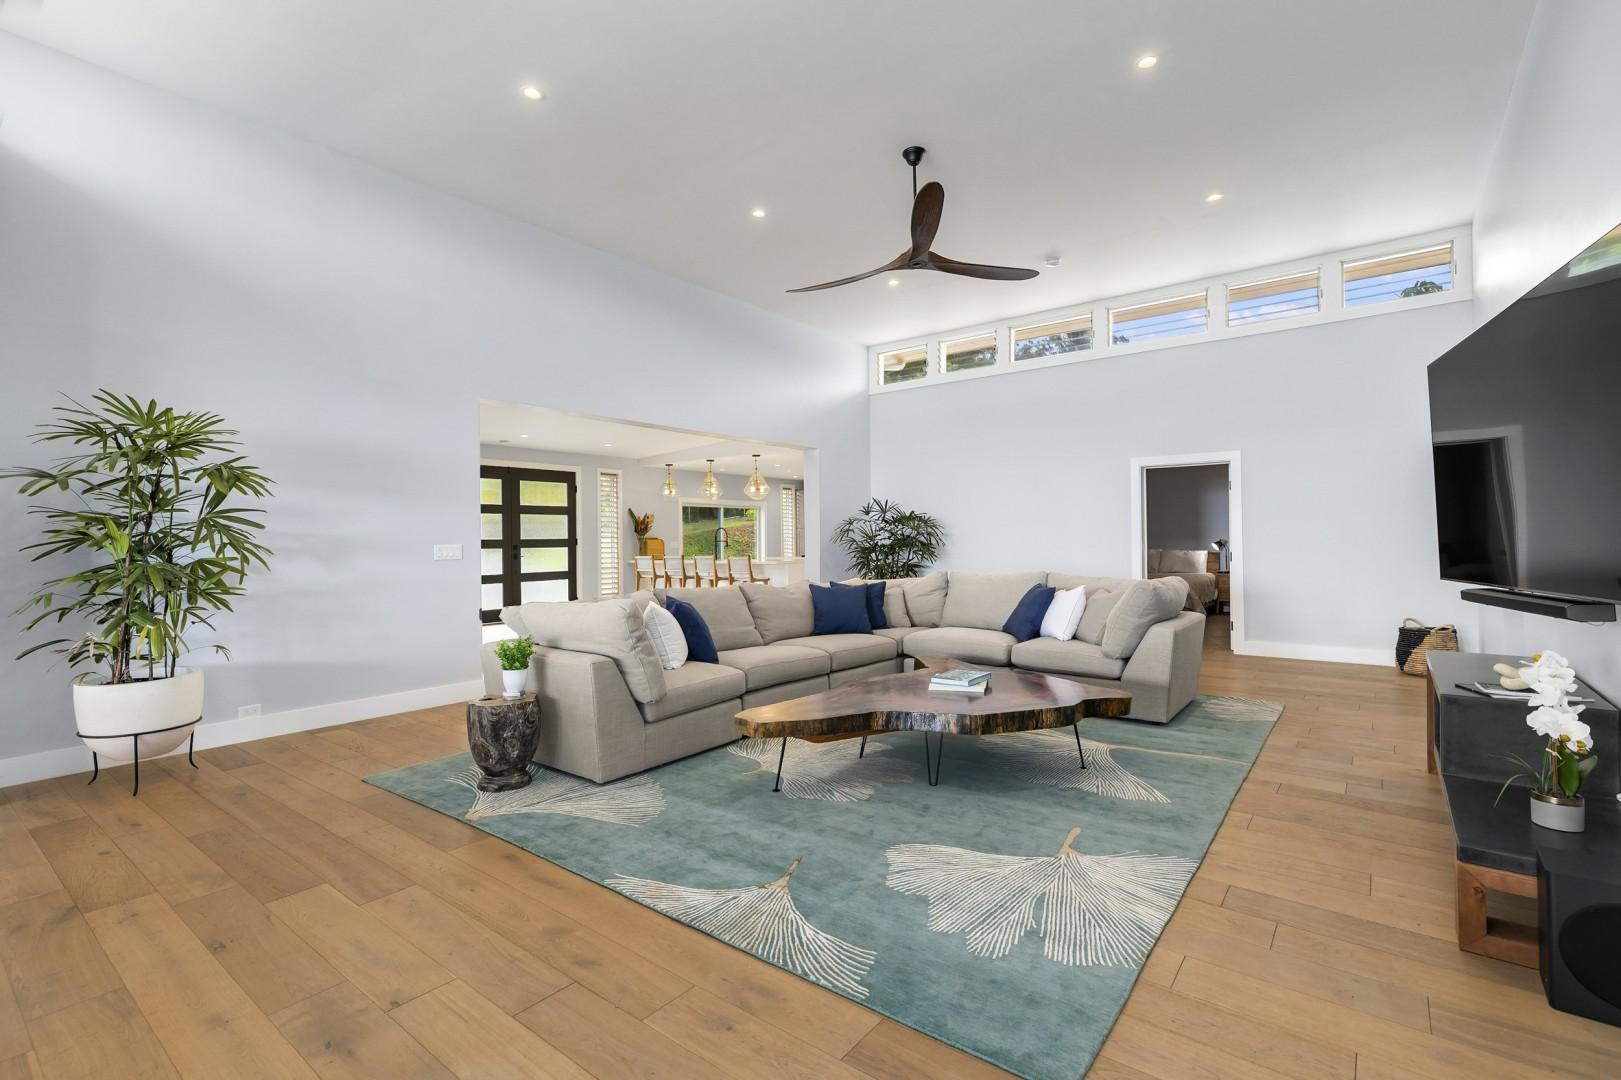 Open living area with smart TV and oversized sectional sofa